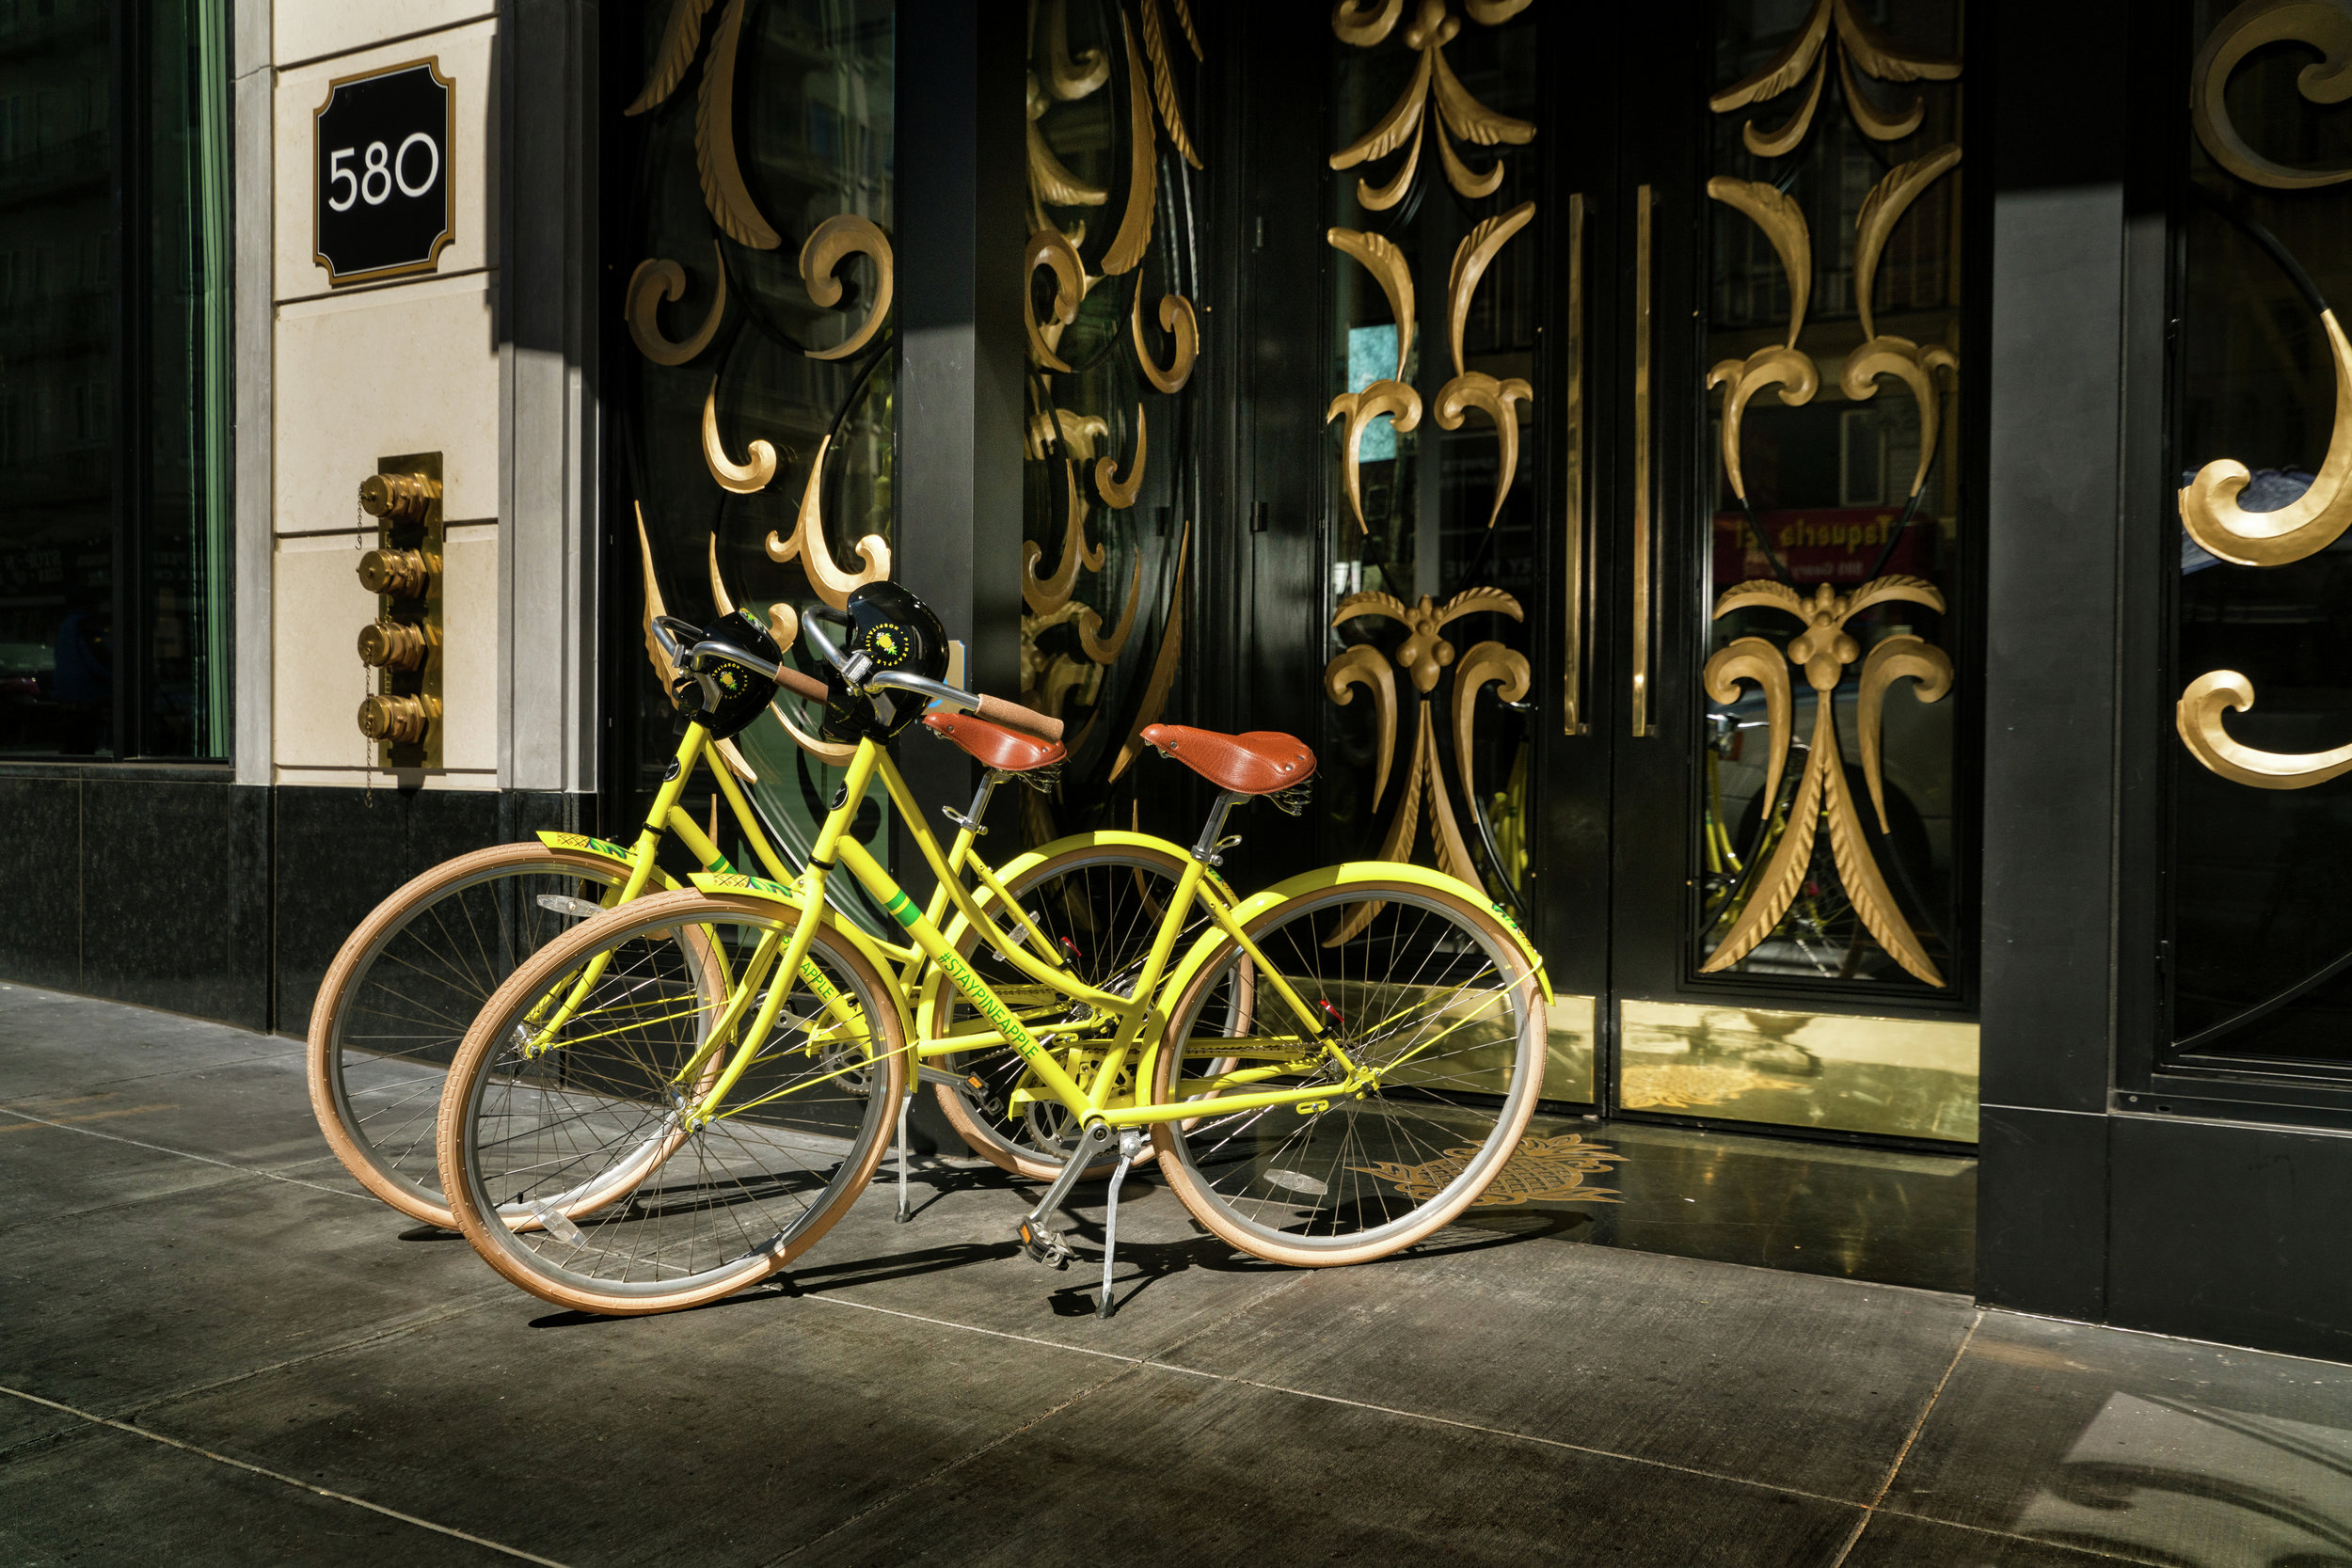 The Alise San Francisco-Exteriors-Bicycles-3501x2335.jpg